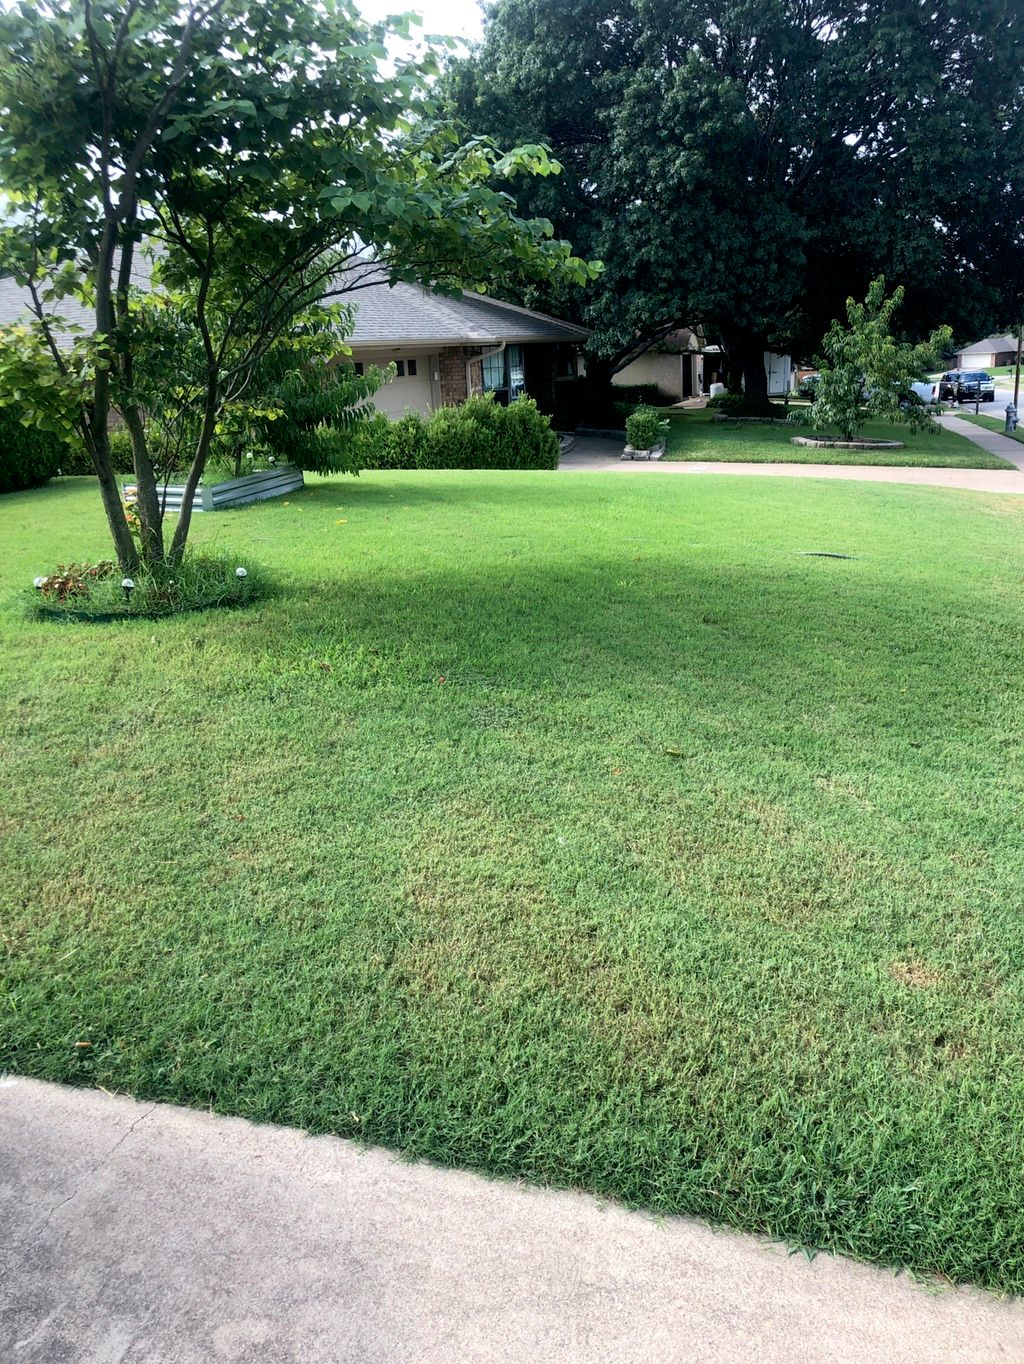 Veasley's Lawn Care Inc.